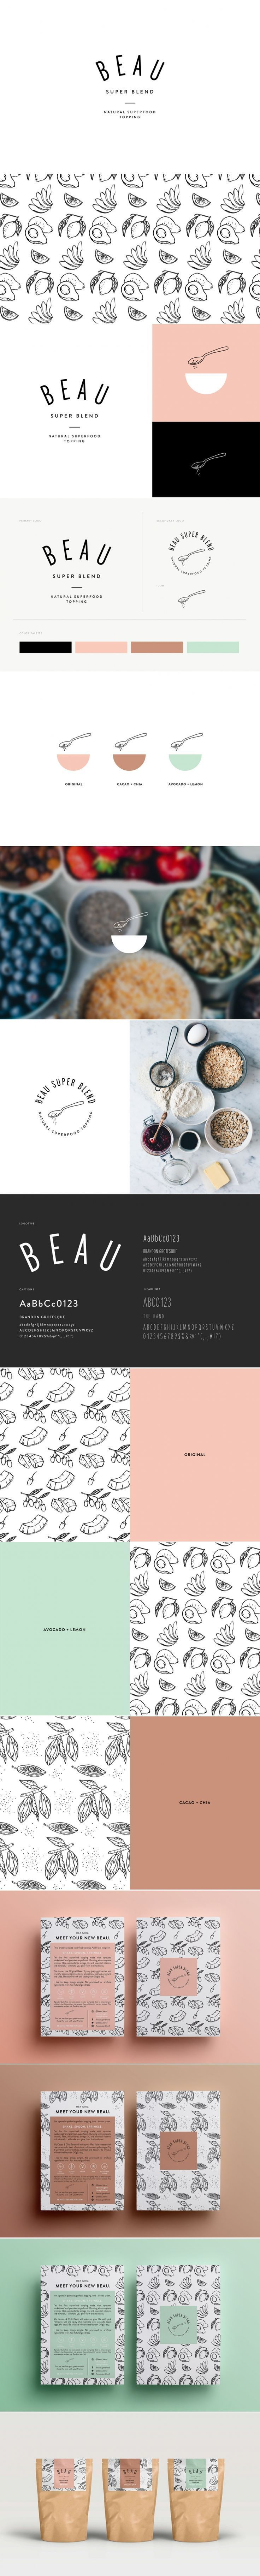 Brand identity, packaging, custom illustrations, and print collateral by Chelsey Dyer for natural foods company 'Beau Super Blend' based in Germany. The soft hues in combination with the hand-made illustrations compliment the use of natural products nicely. The choice of simple typography also helps to emphasise the company values of utilising simple, healthy ingredients further.: